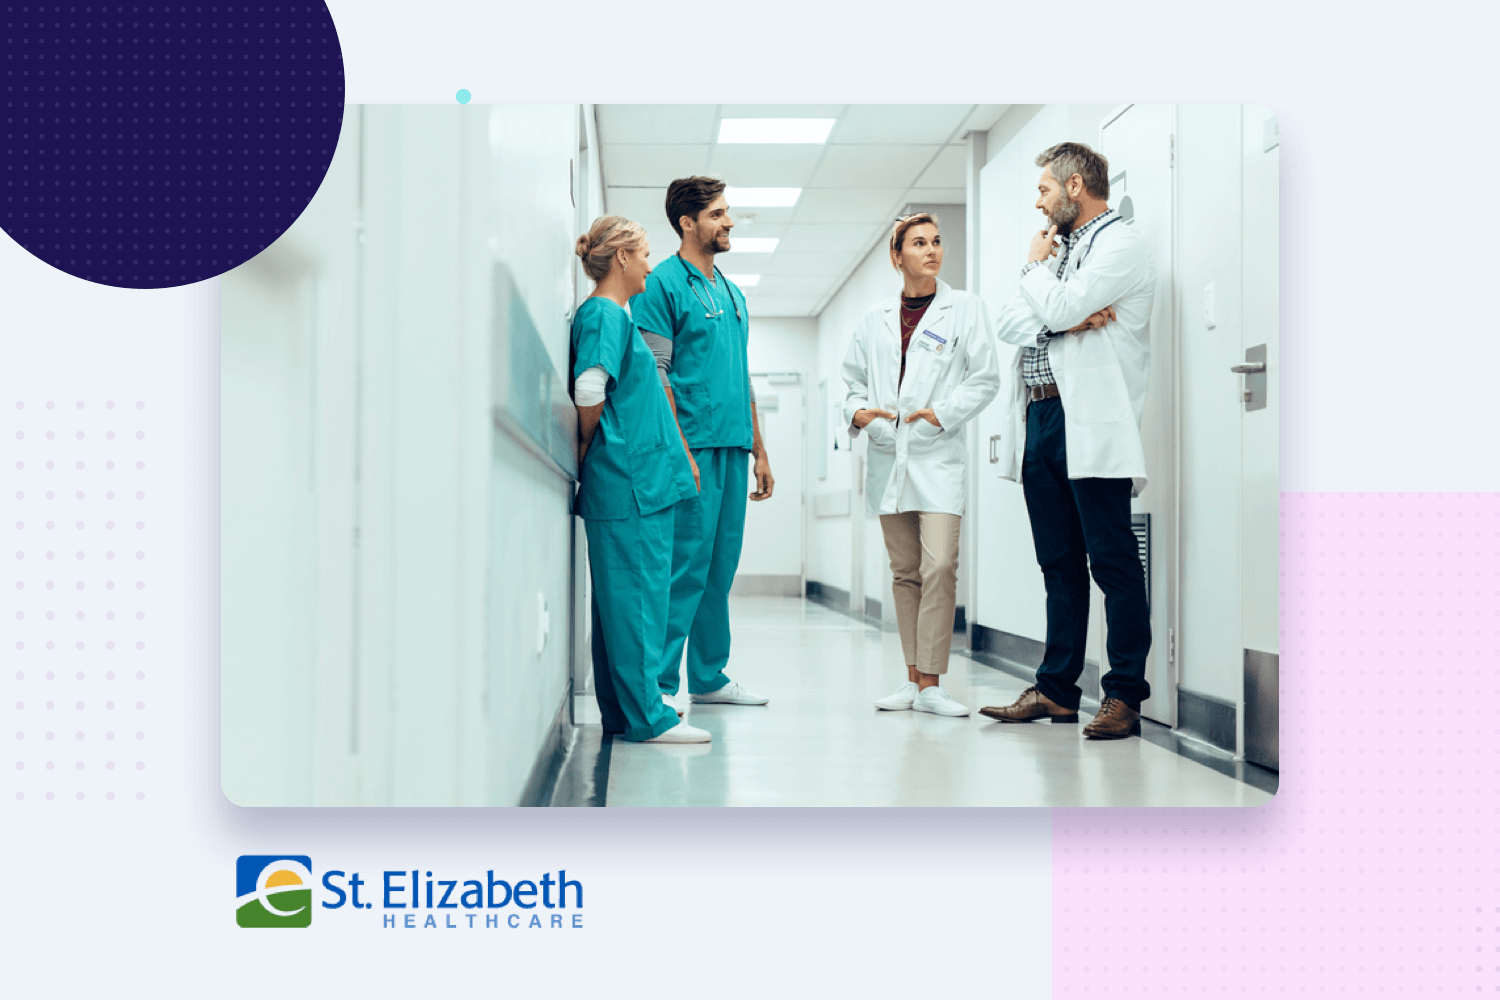 St. Elizabeth Healthcare Communication